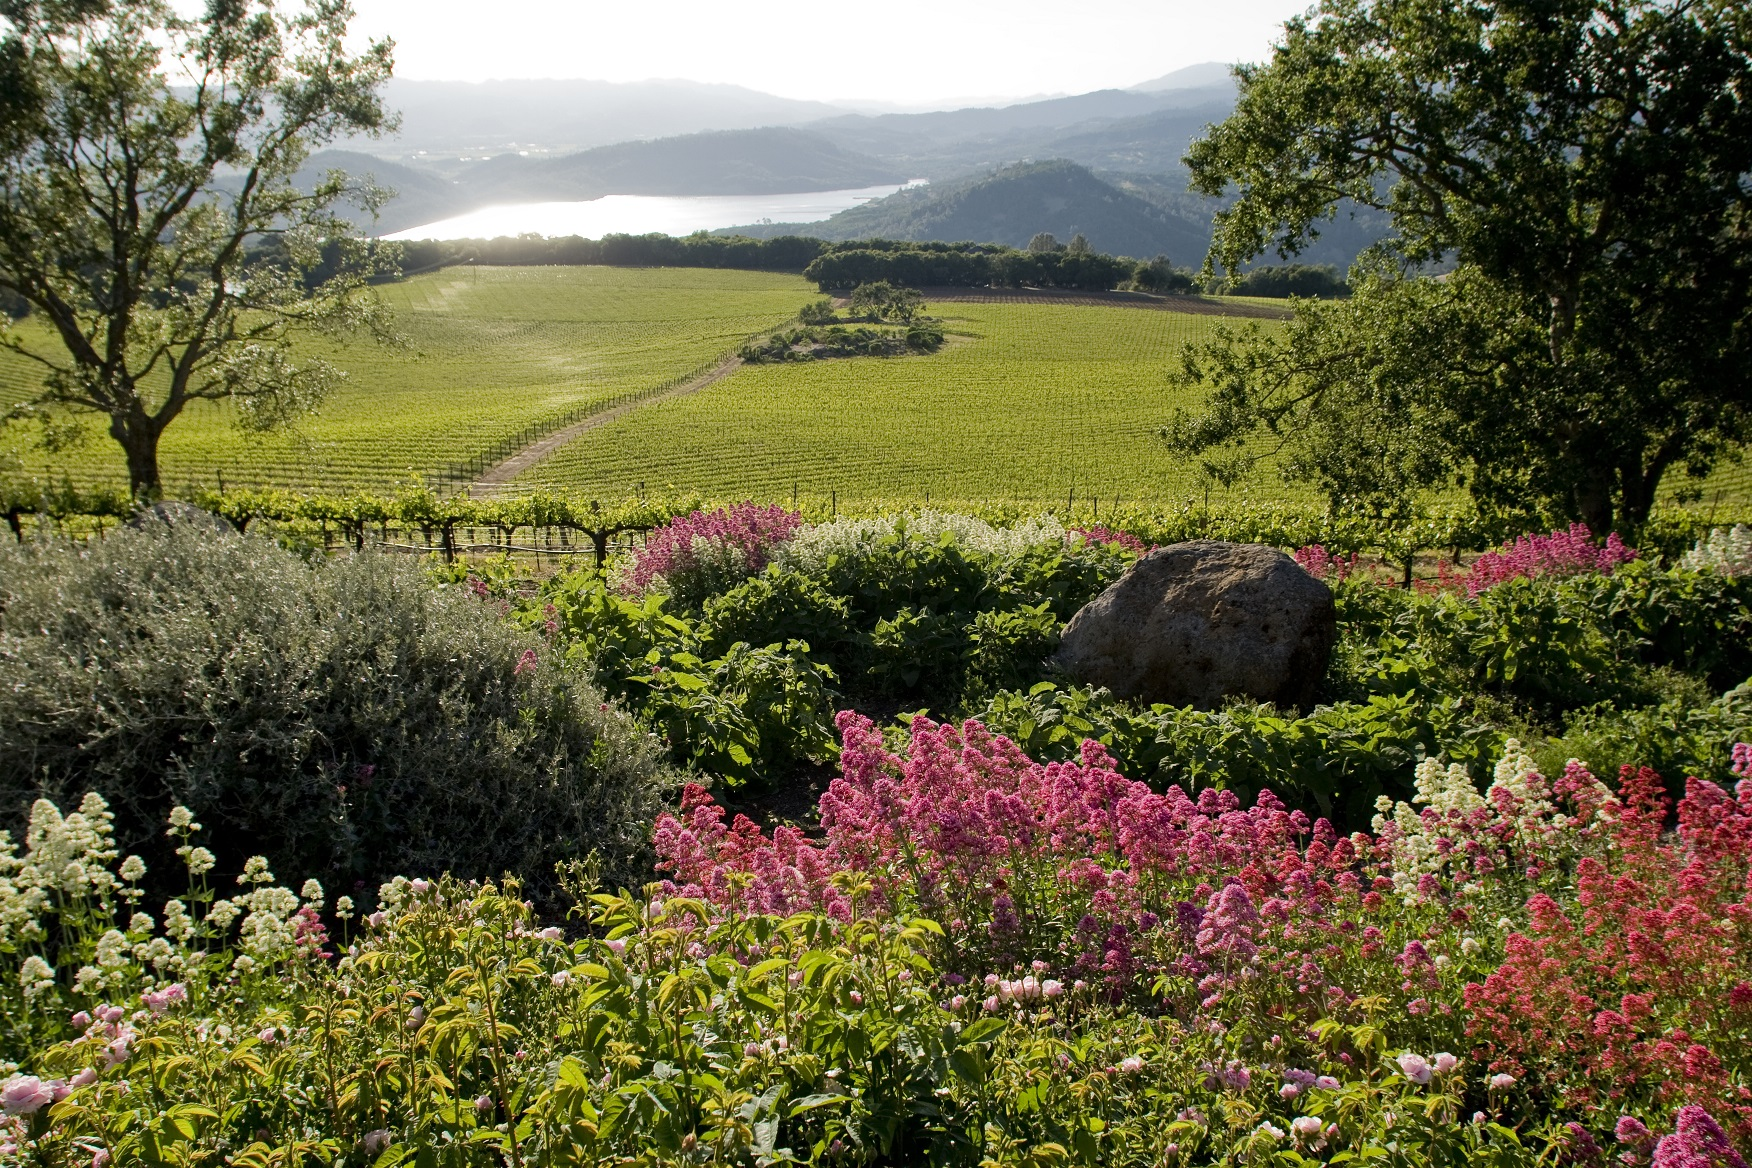 Photo Courtesy of Chappellet - Chappellet's vineyard on Pritchard Hill from the midst of Molly Chappellet's garden